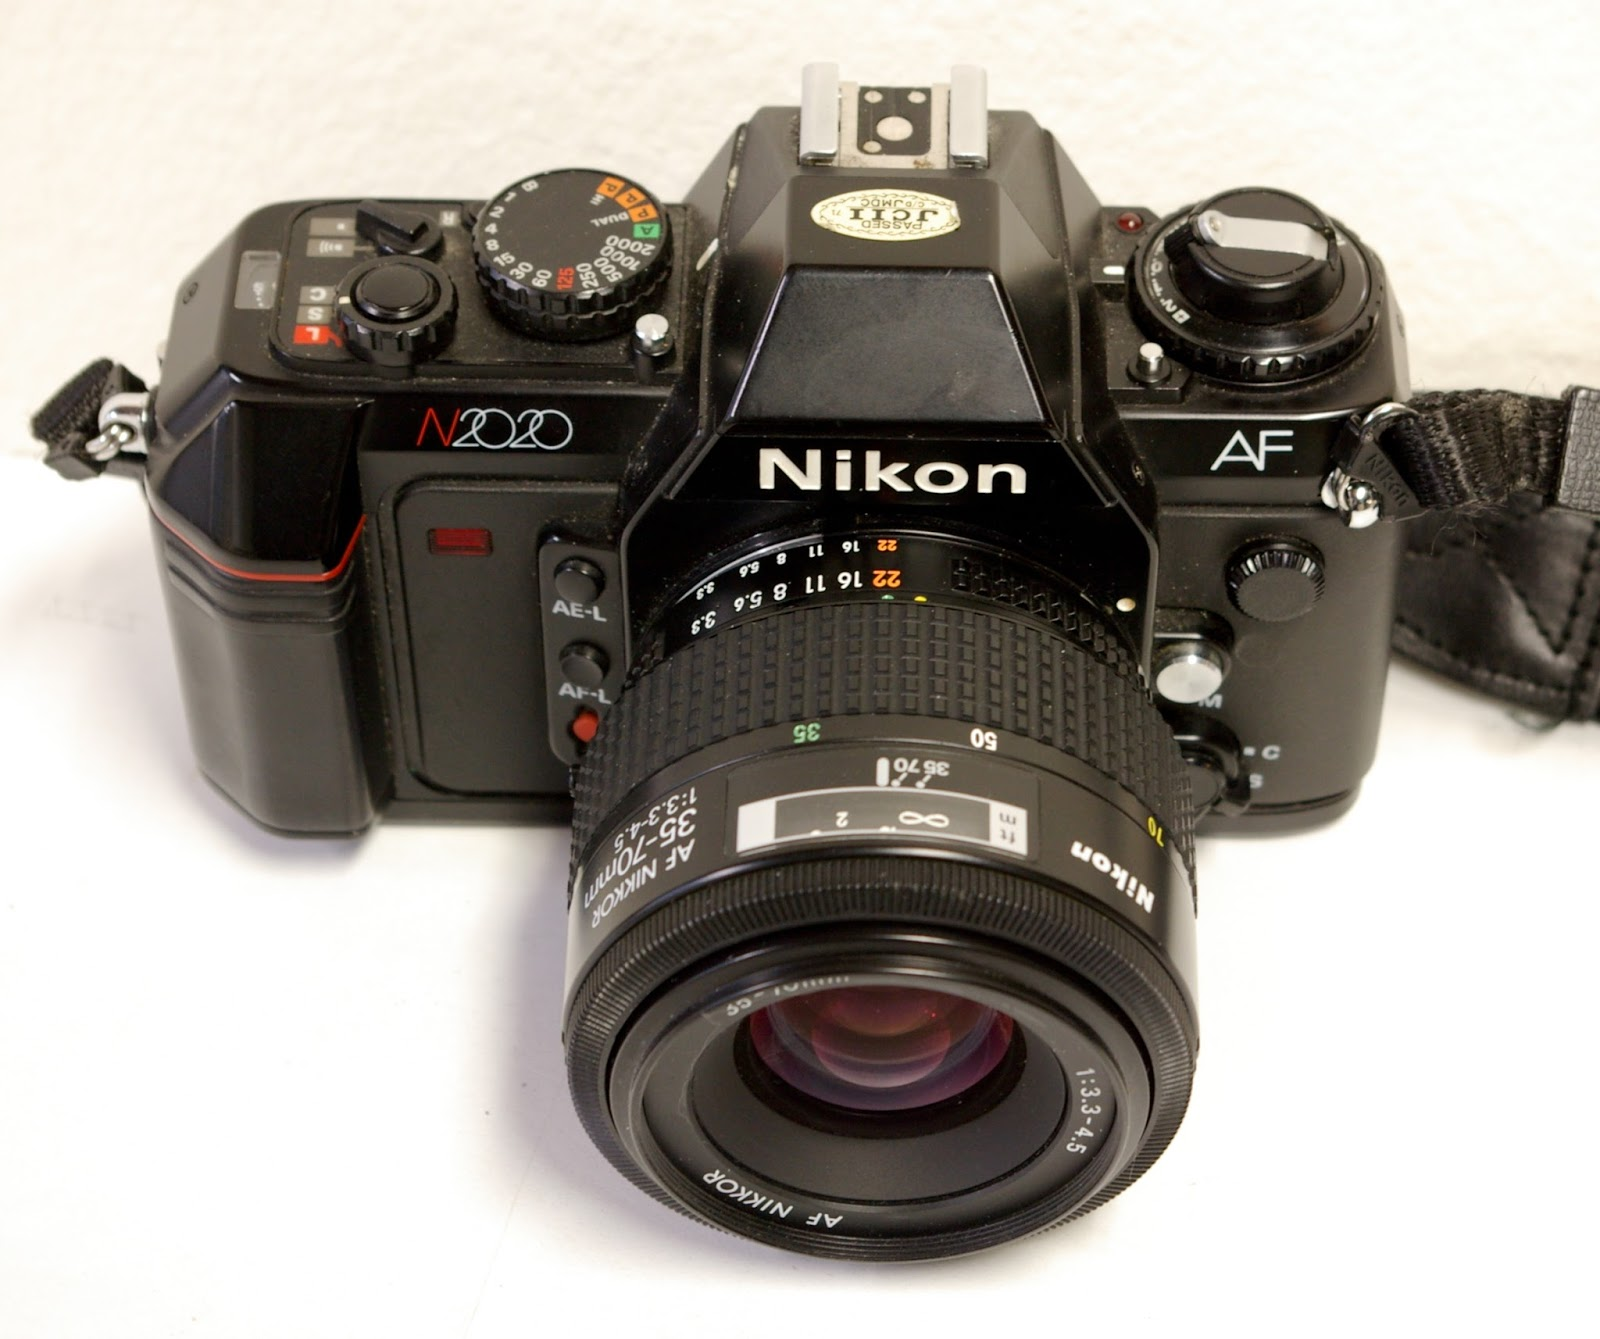 random camera blog nikon took af mainstream the n2020 slr rh randomphoto blogspot com Nikon N2020 Camera Review nikon n2020 camera manual